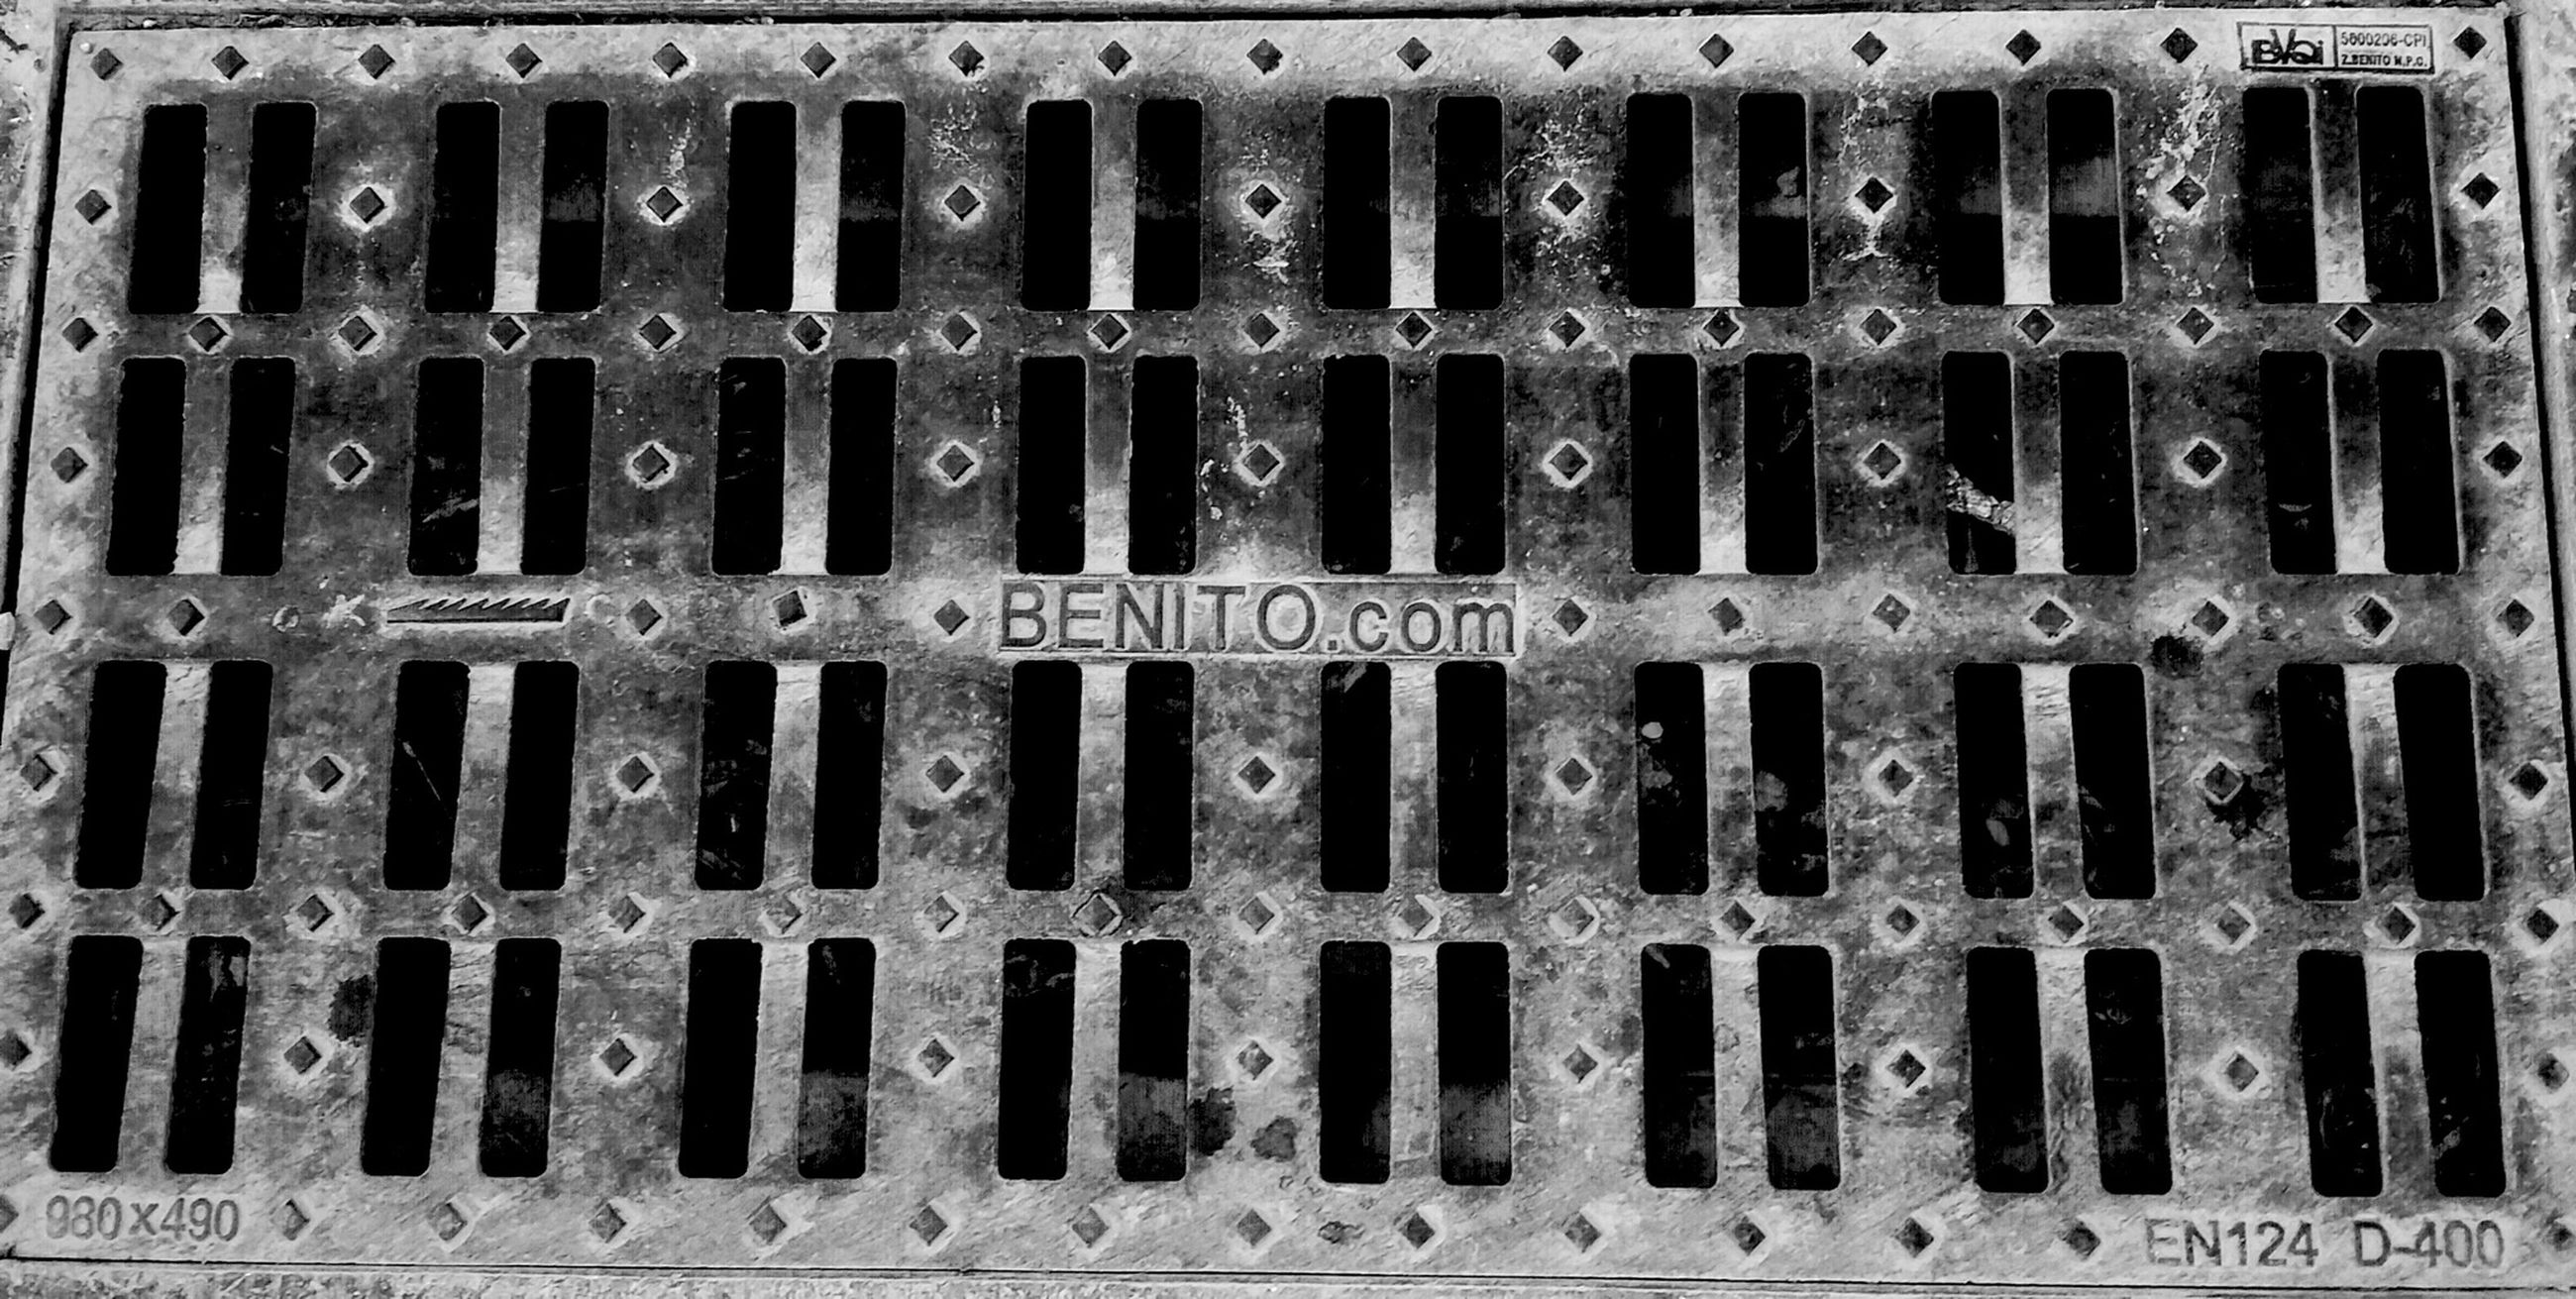 full frame, backgrounds, pattern, metal, close-up, repetition, protection, safety, textured, metallic, security, design, indoors, no people, closed, detail, metal grate, geometric shape, fence, square shape